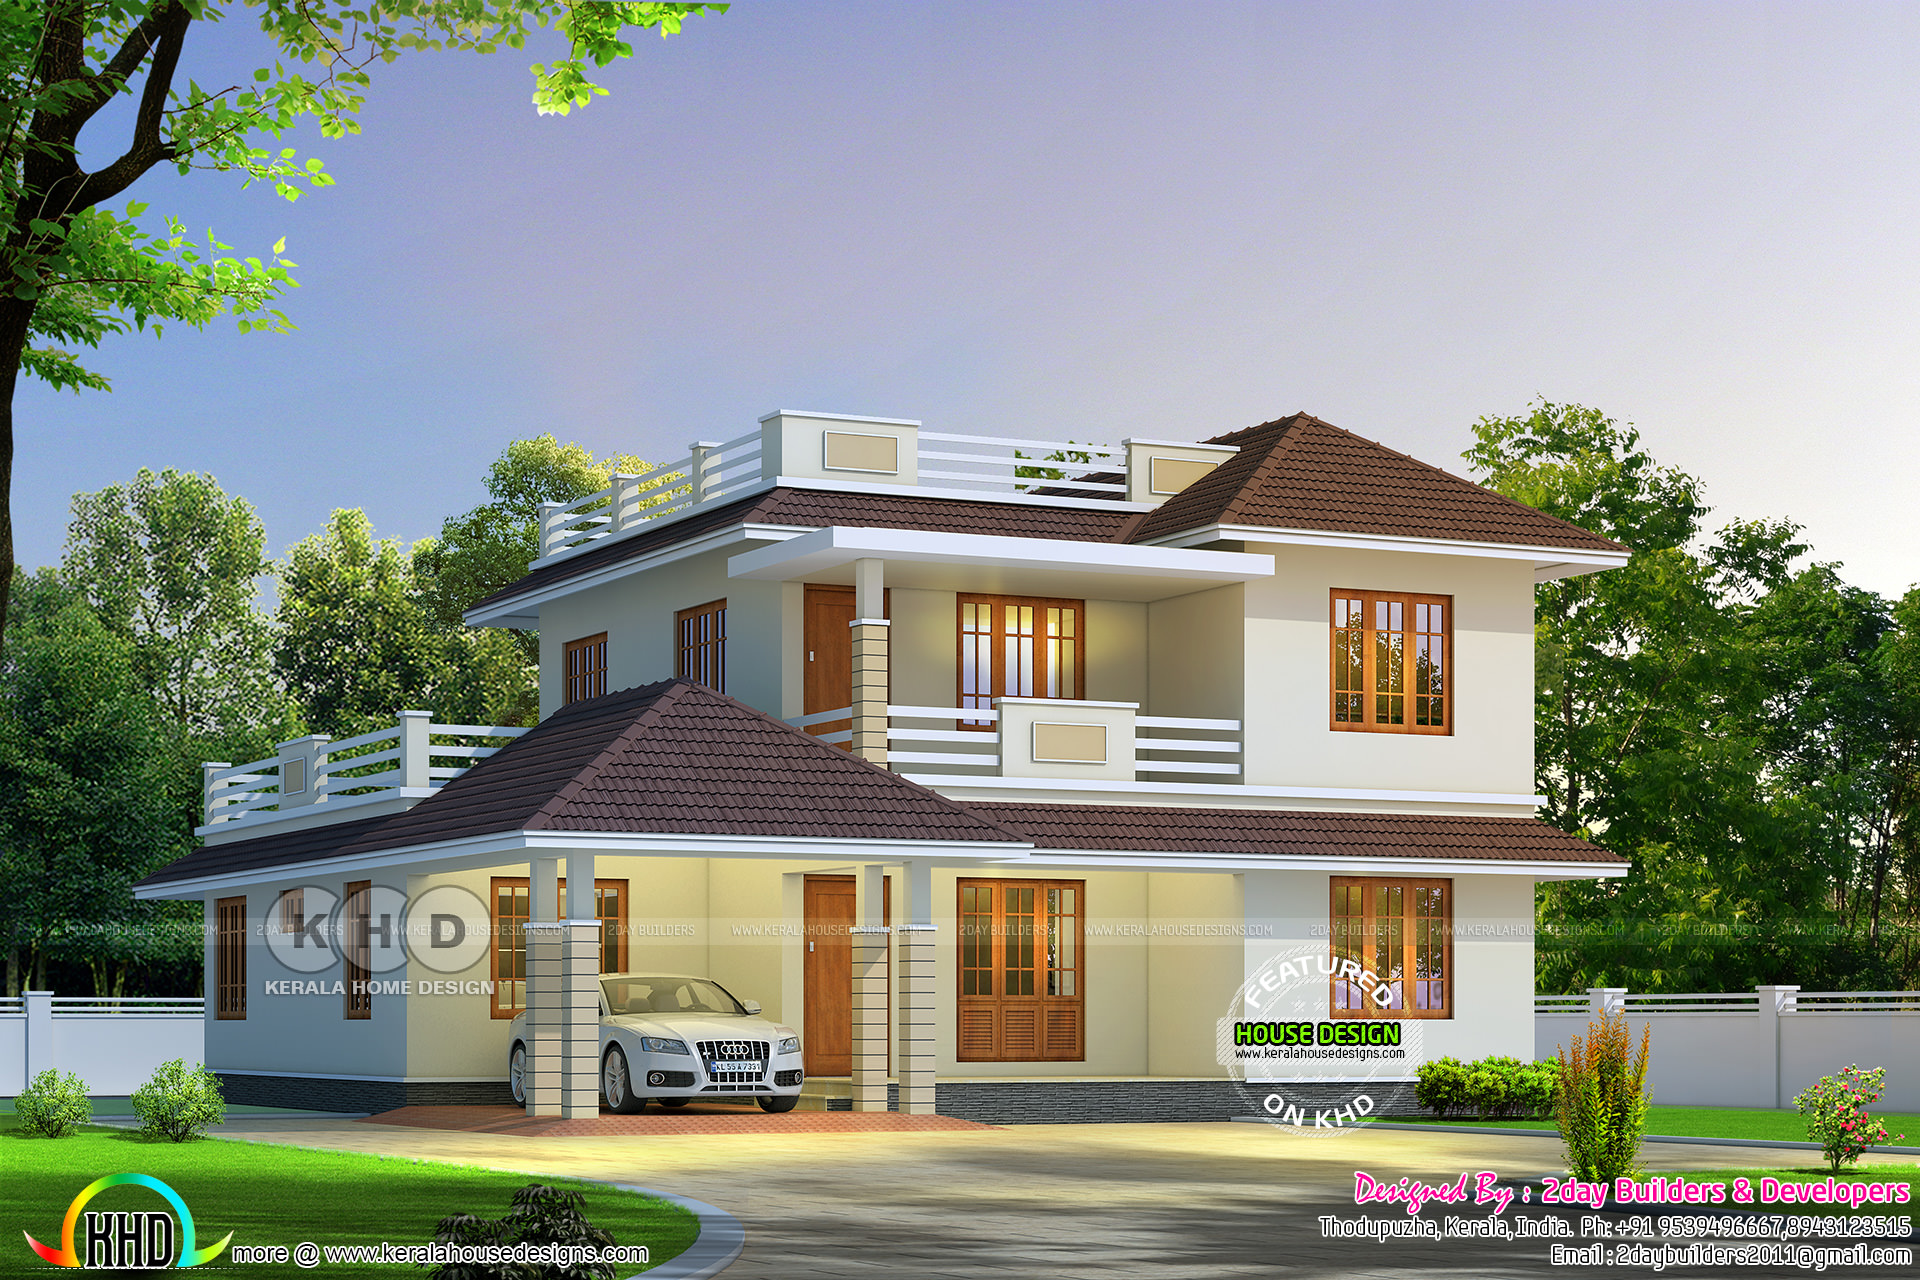 Delicieux Please Follow Kerala Home Design